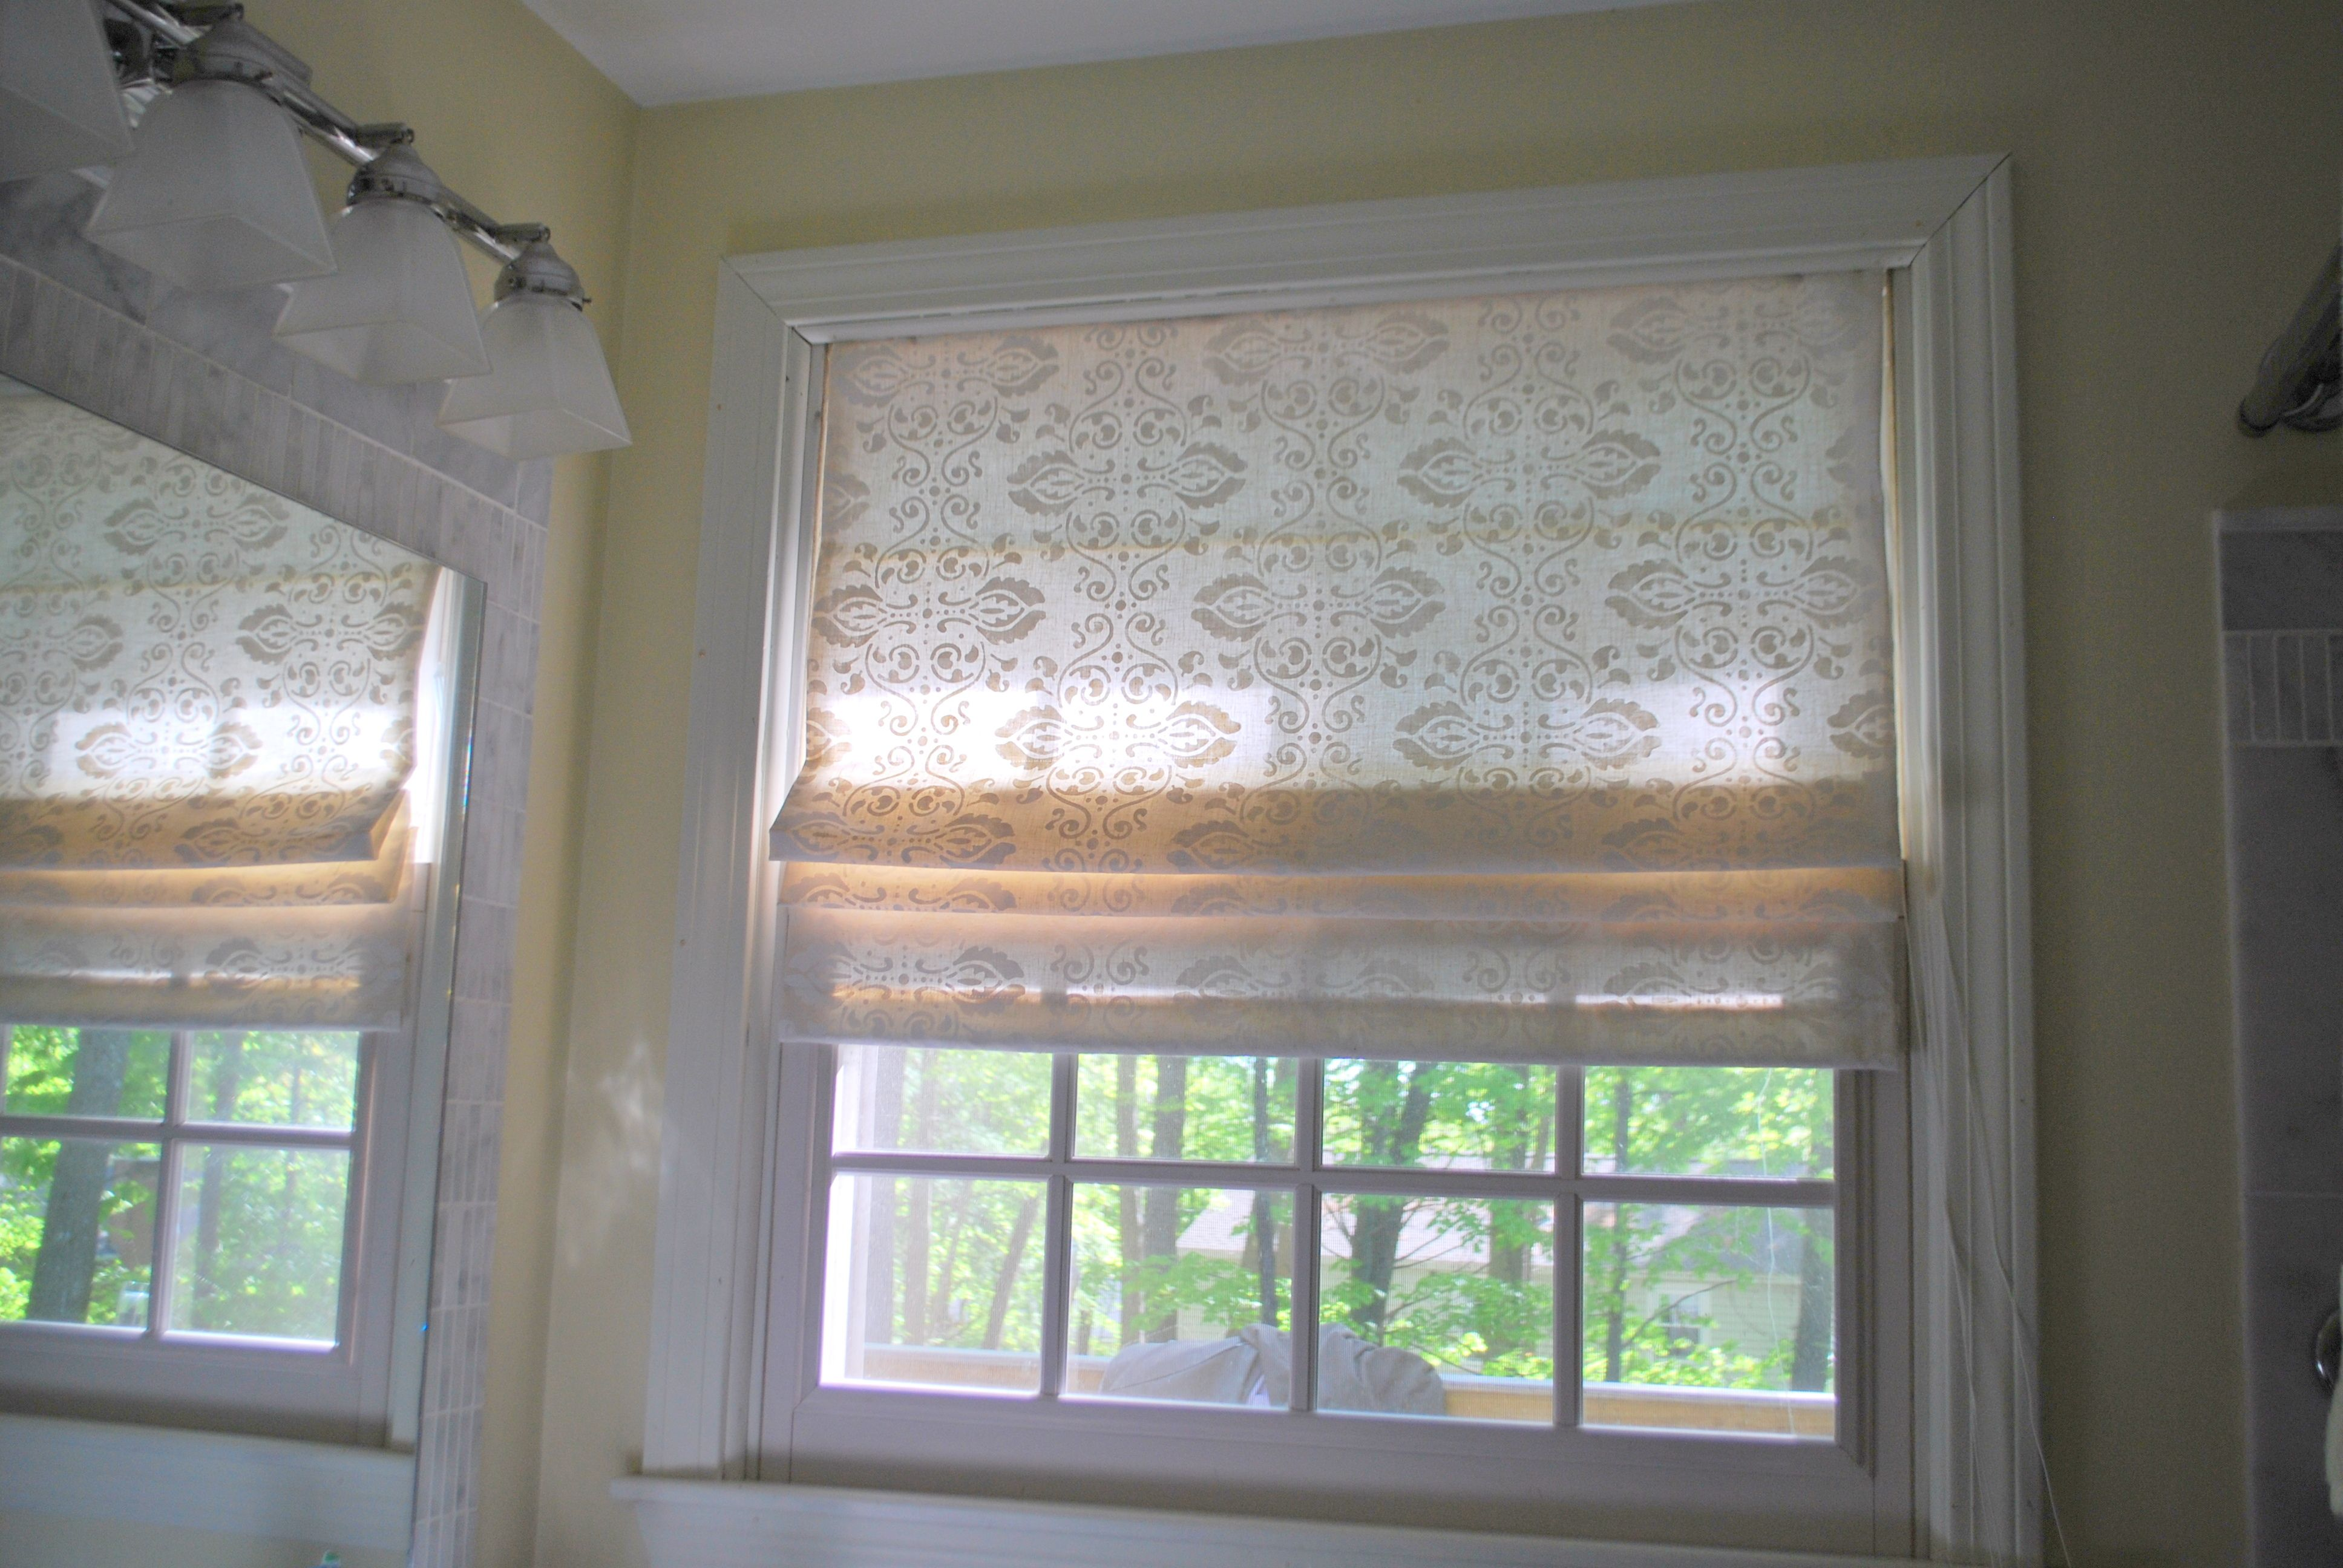 Diy Roman Shade Kits Just Finished It This Service Is Great